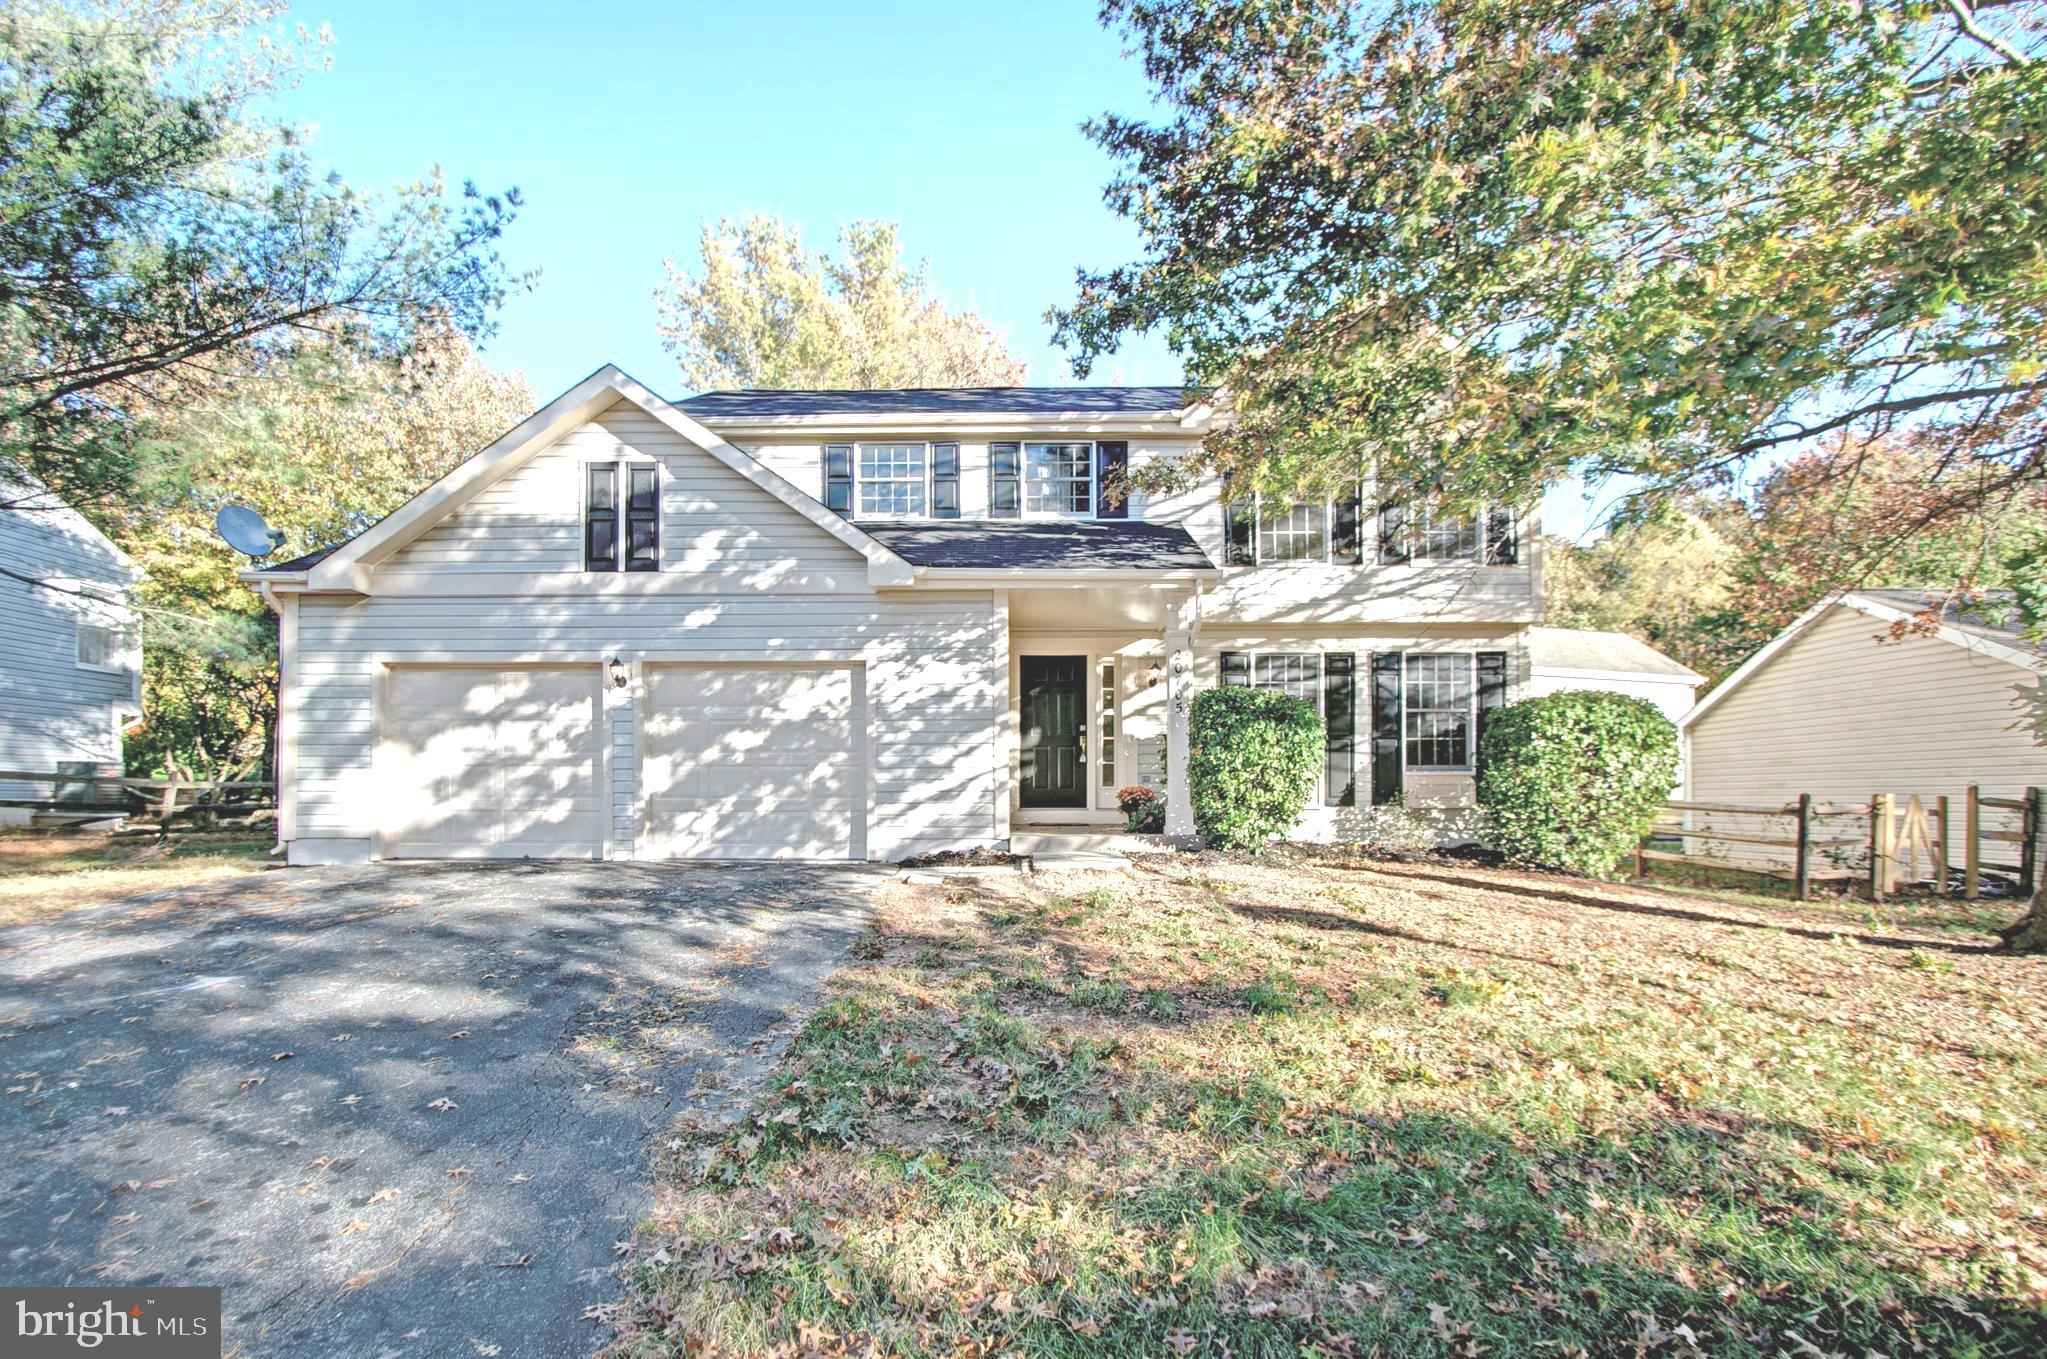 20705 SHAKESPEARE DRIVE, GERMANTOWN, MD 20876